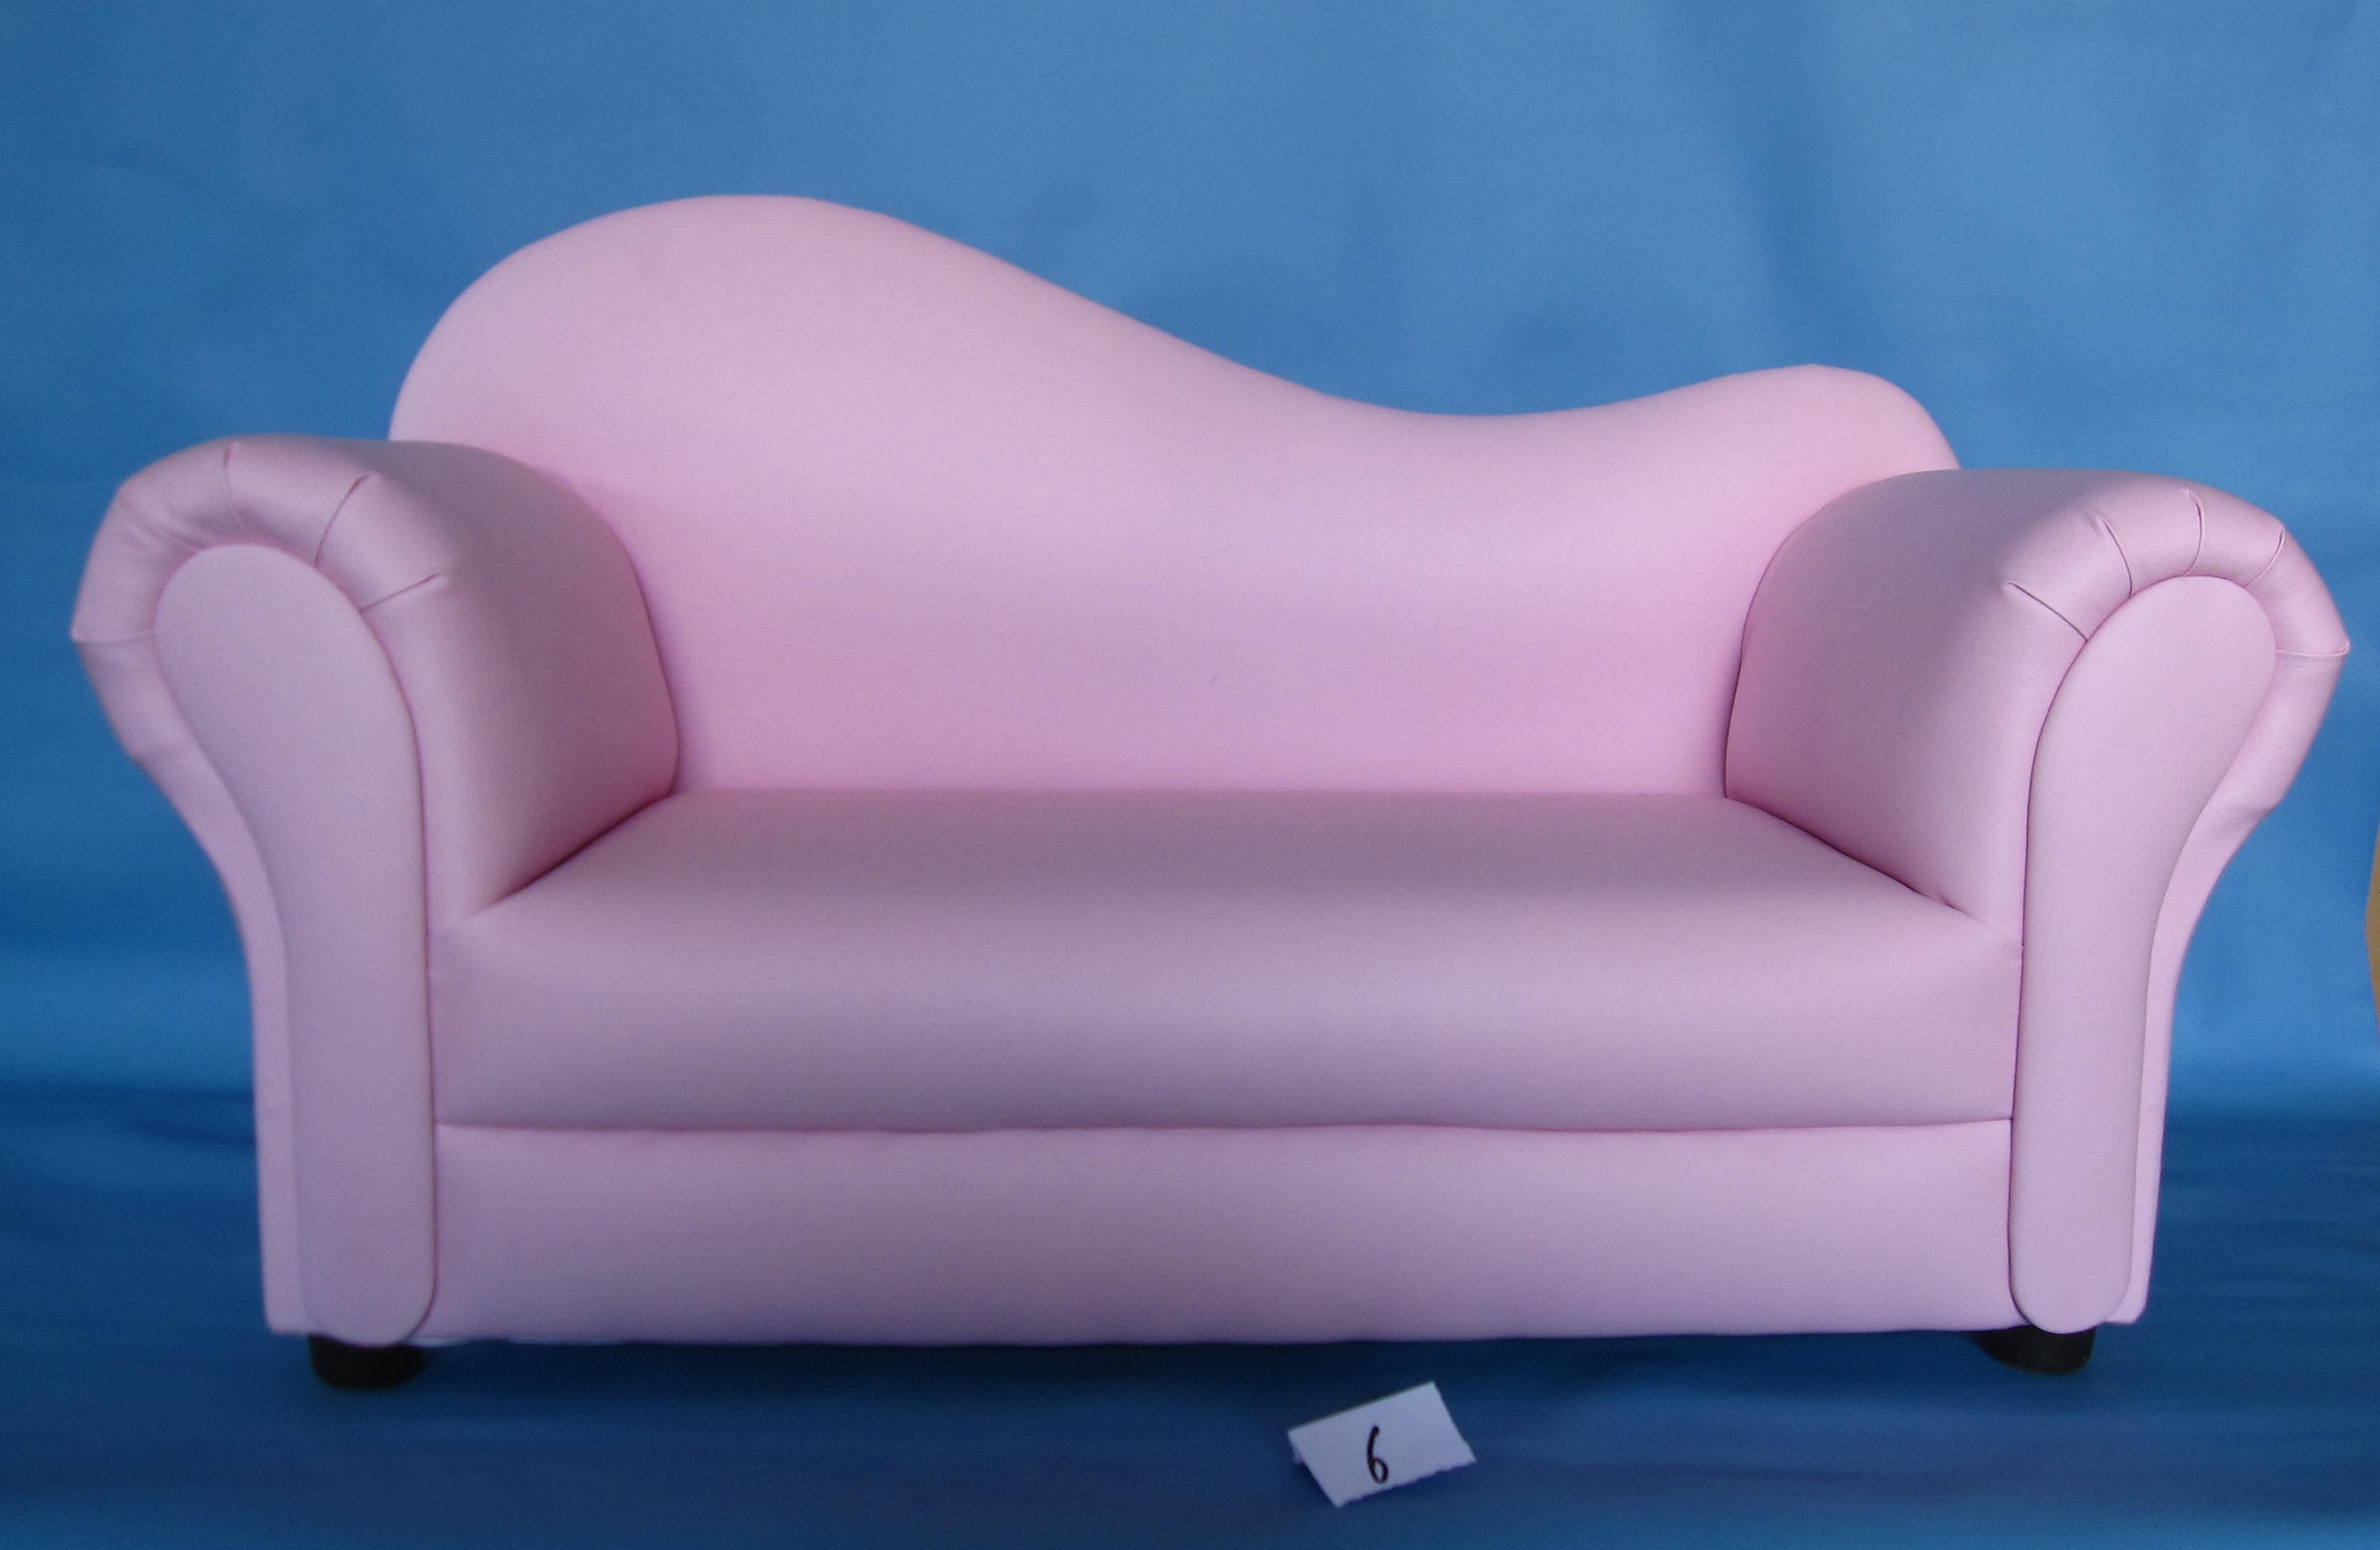 15 Best Collection Of Inflatable Sofas And Chairs Sofa Ideas